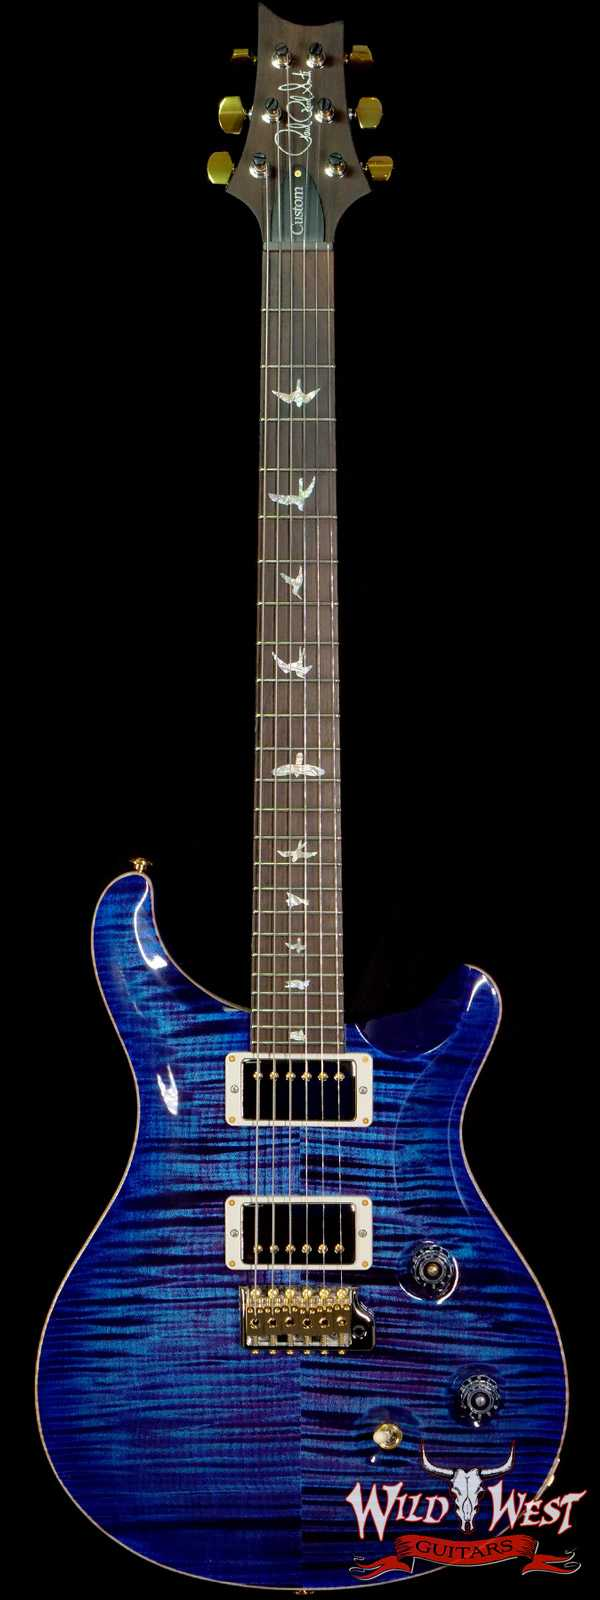 Paul Reed Smith PRS Wood Library 10 Top Custom 24 Pattern Thin Flame Maple Neck Brazilian Rosewood Board Violet Blue Burst